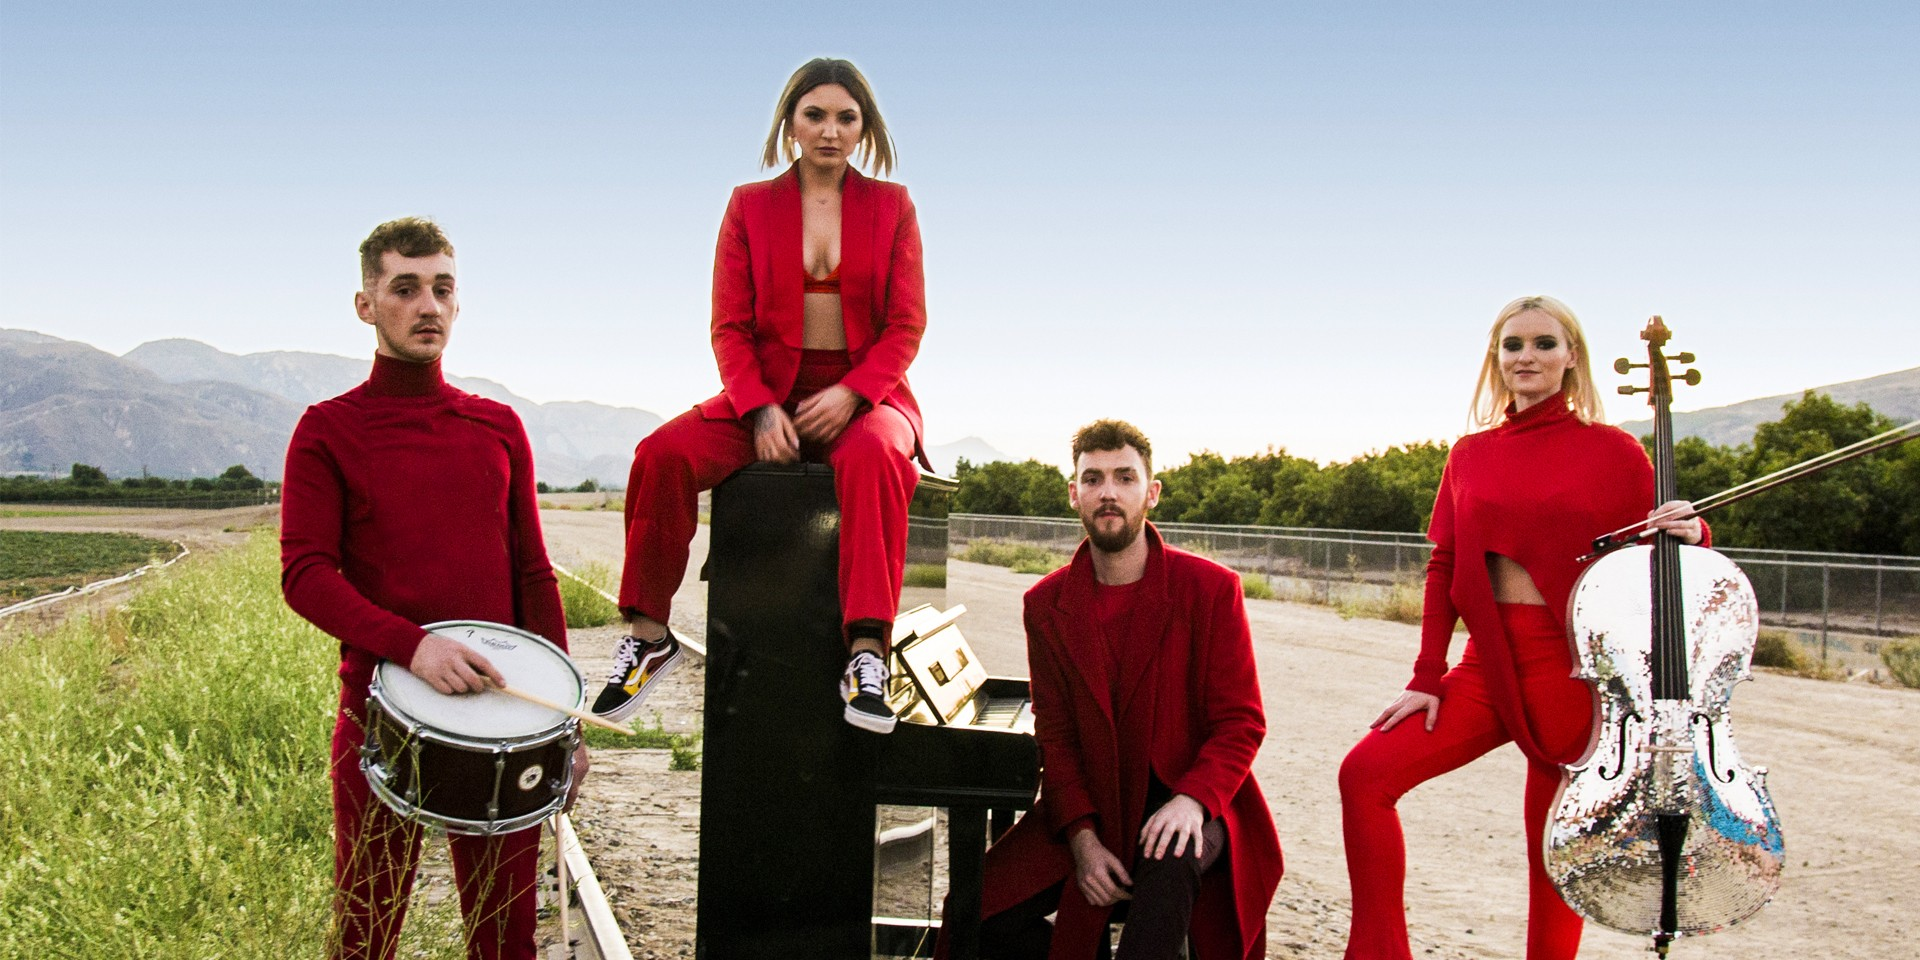 Clean Bandit confirm new date for previously postponed Singapore show